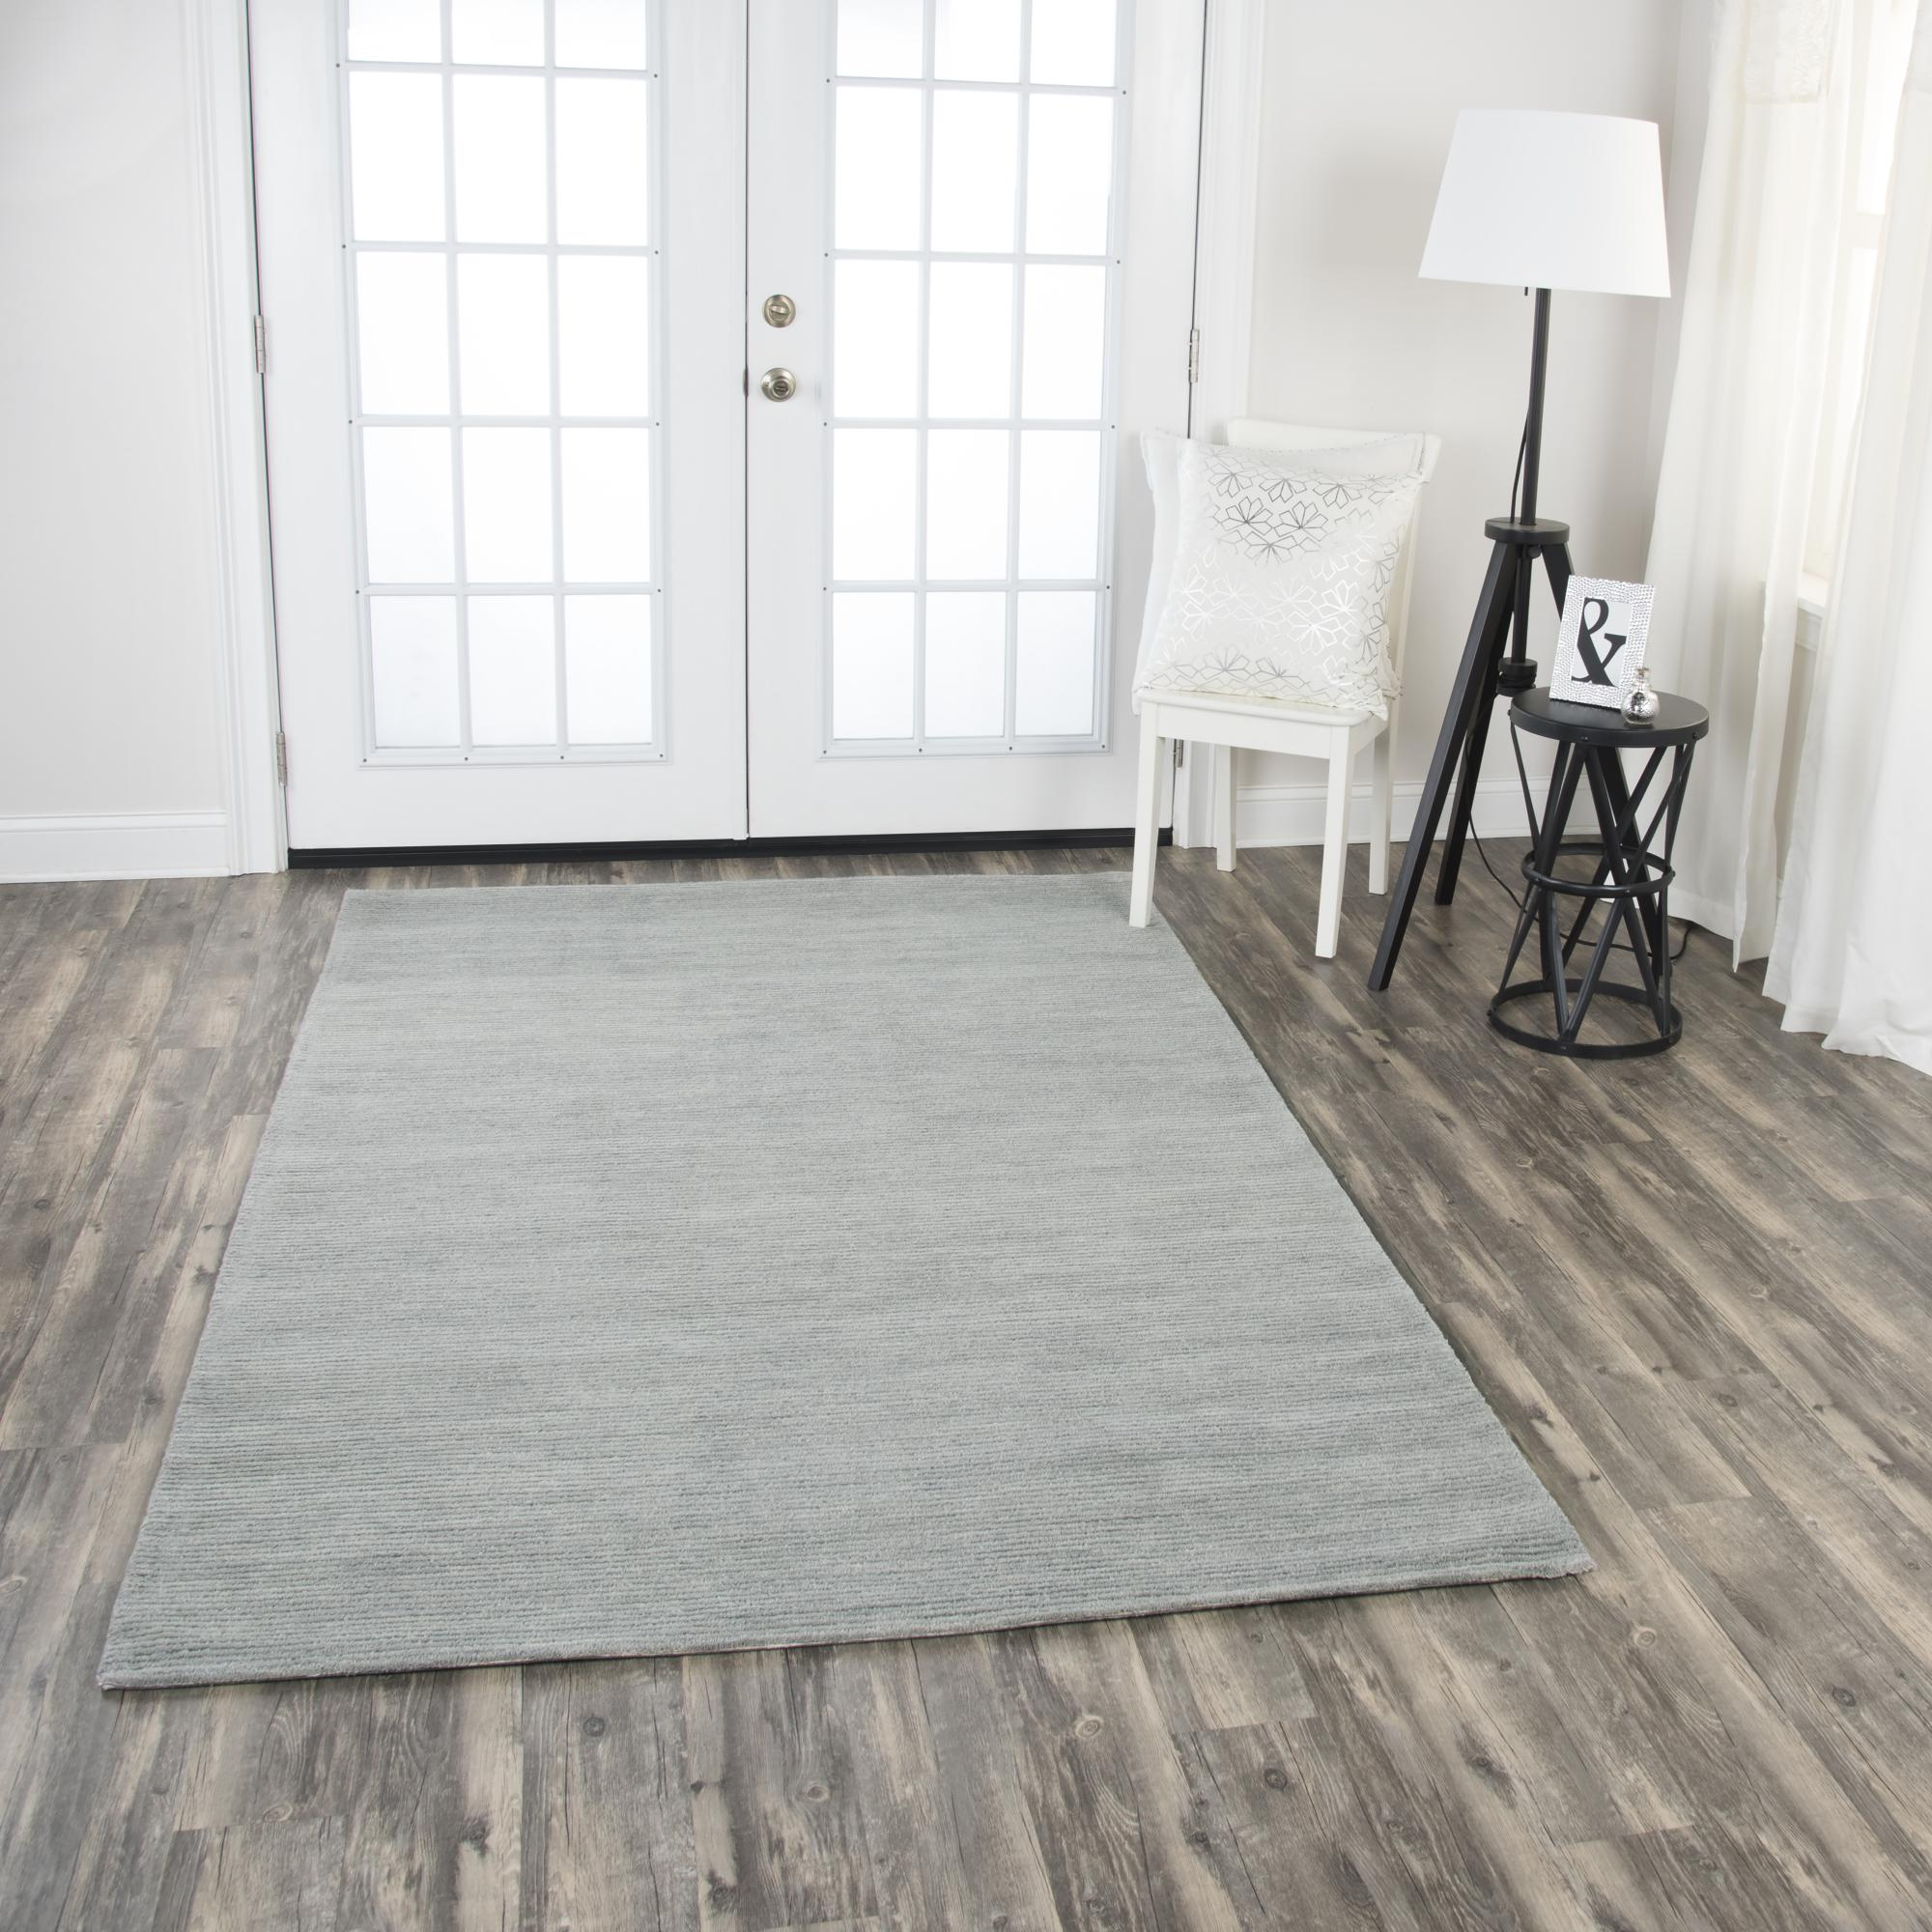 Rizzy Home FA150B Grey 5' x 8' Hand-Tufted Area Rug